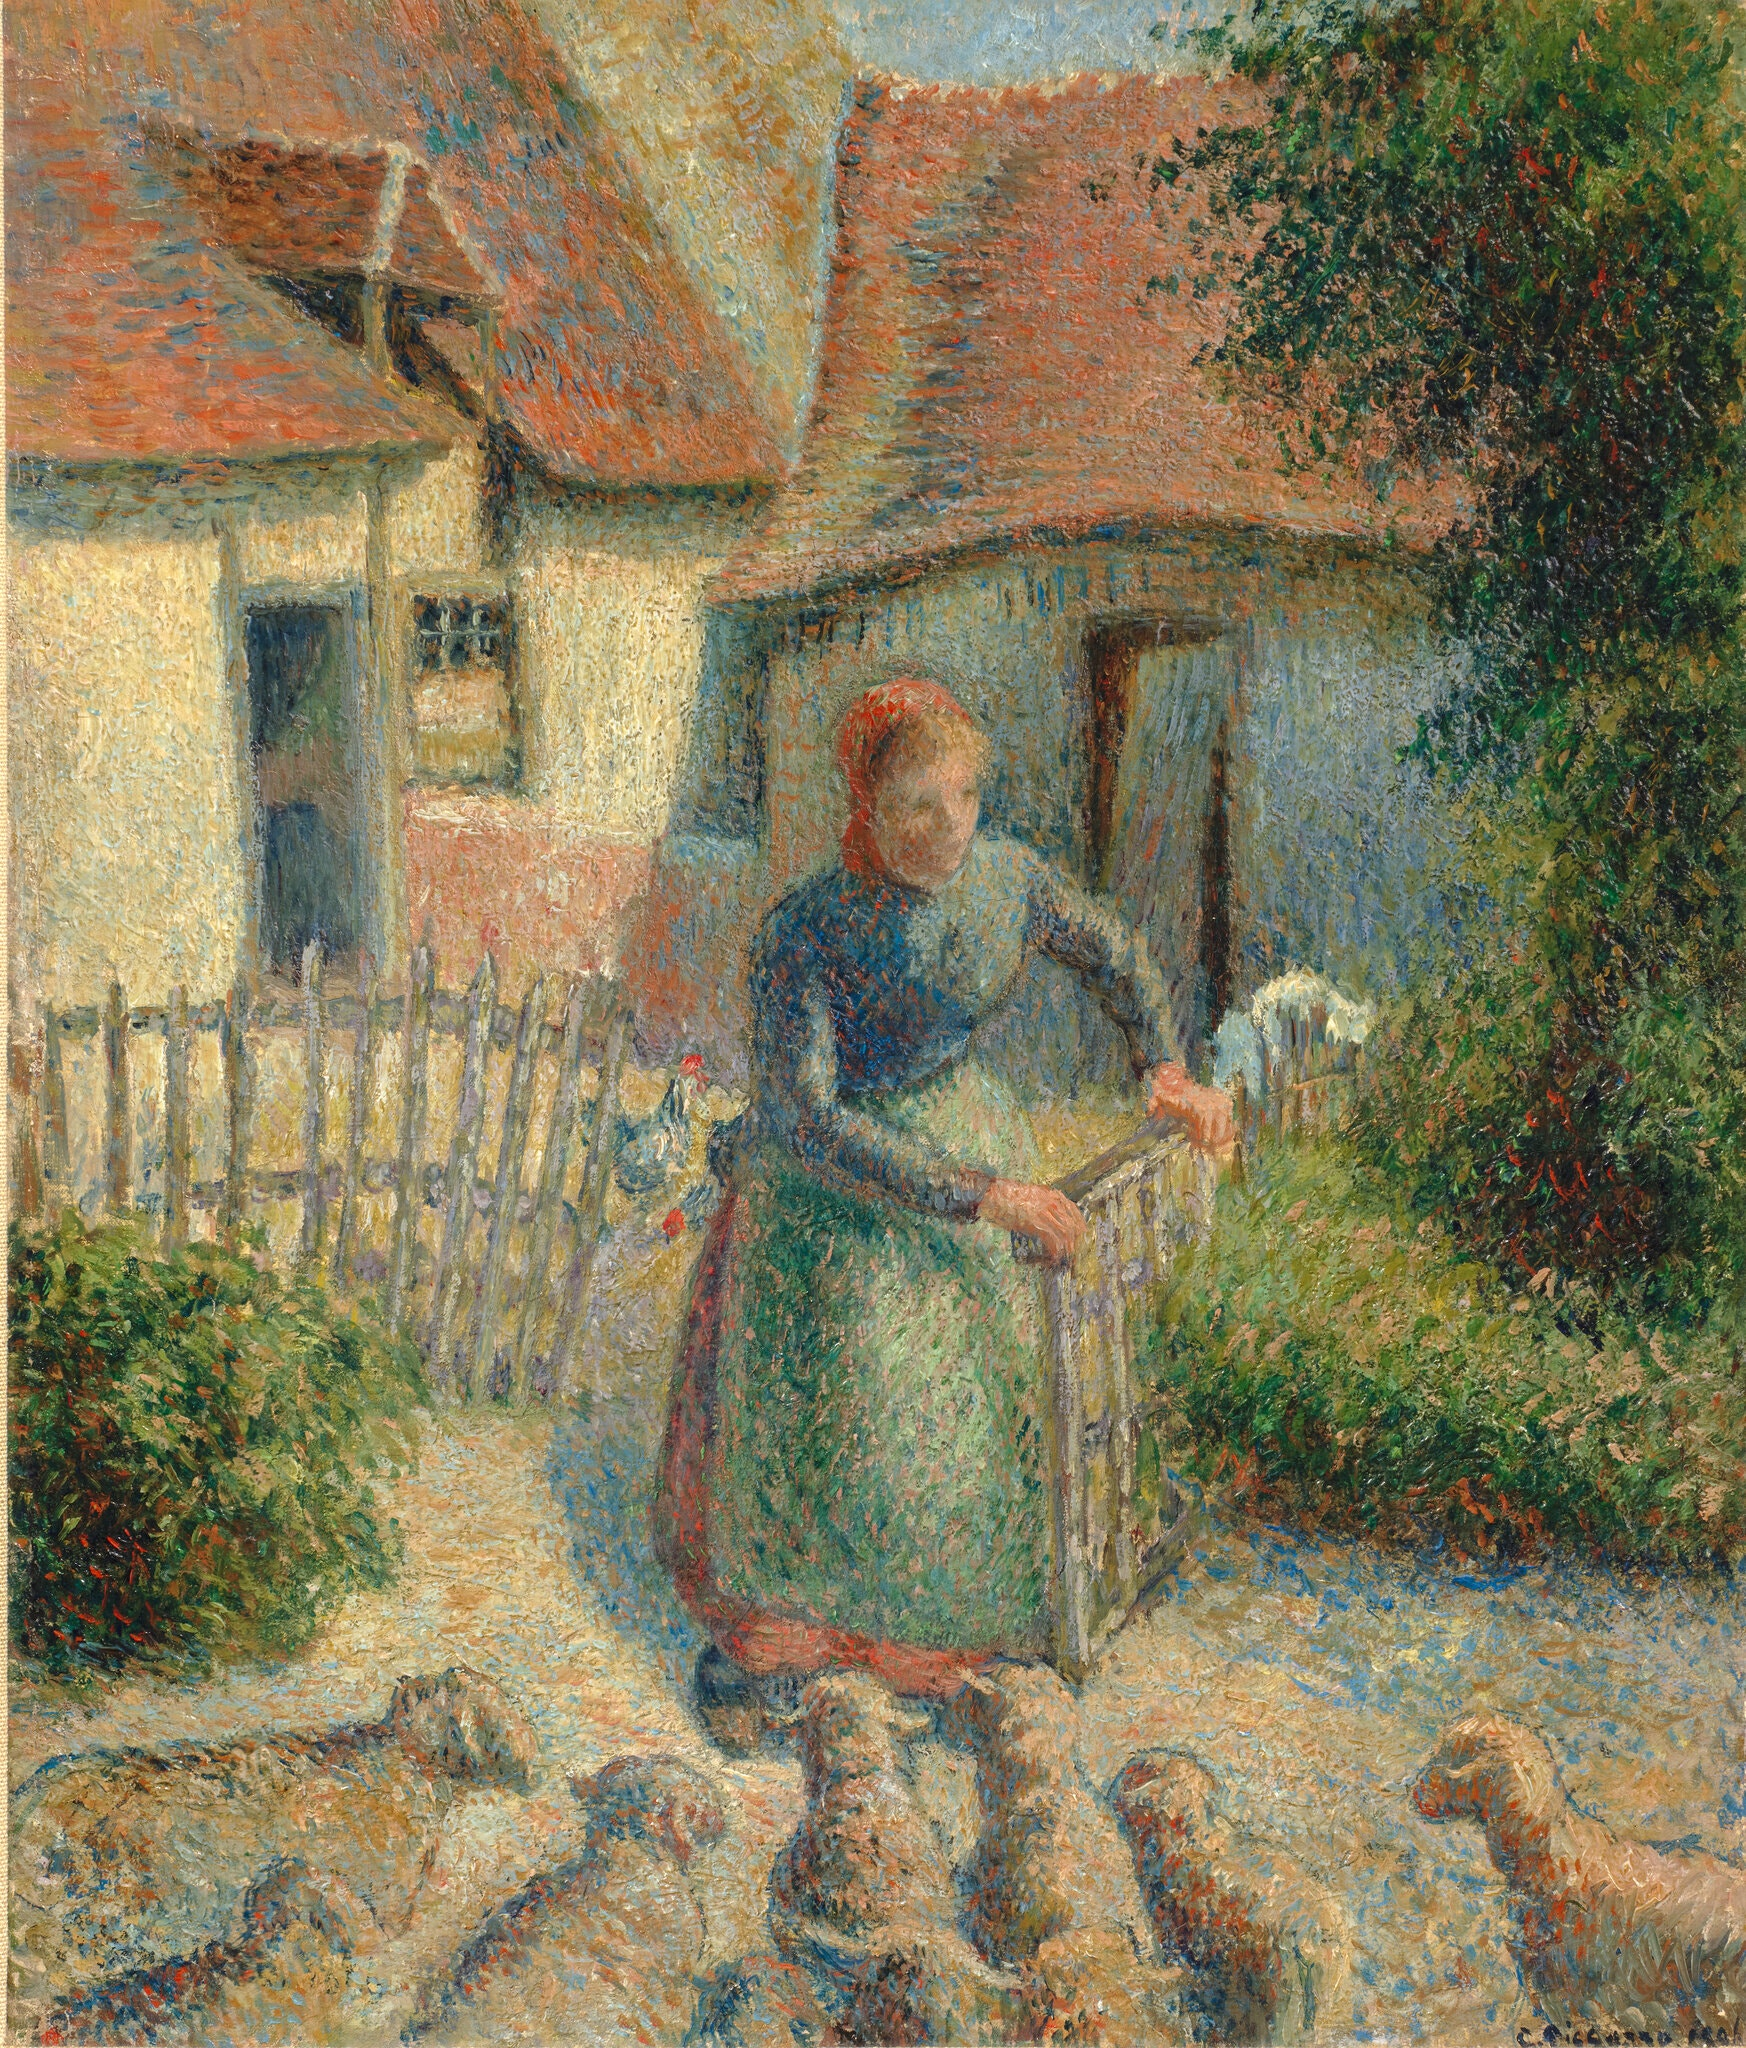 'I Have No Other Choice': Holocaust Survivor Relinquishes Her Claim to a Looted Camille Pissarro Painting   Artnet News